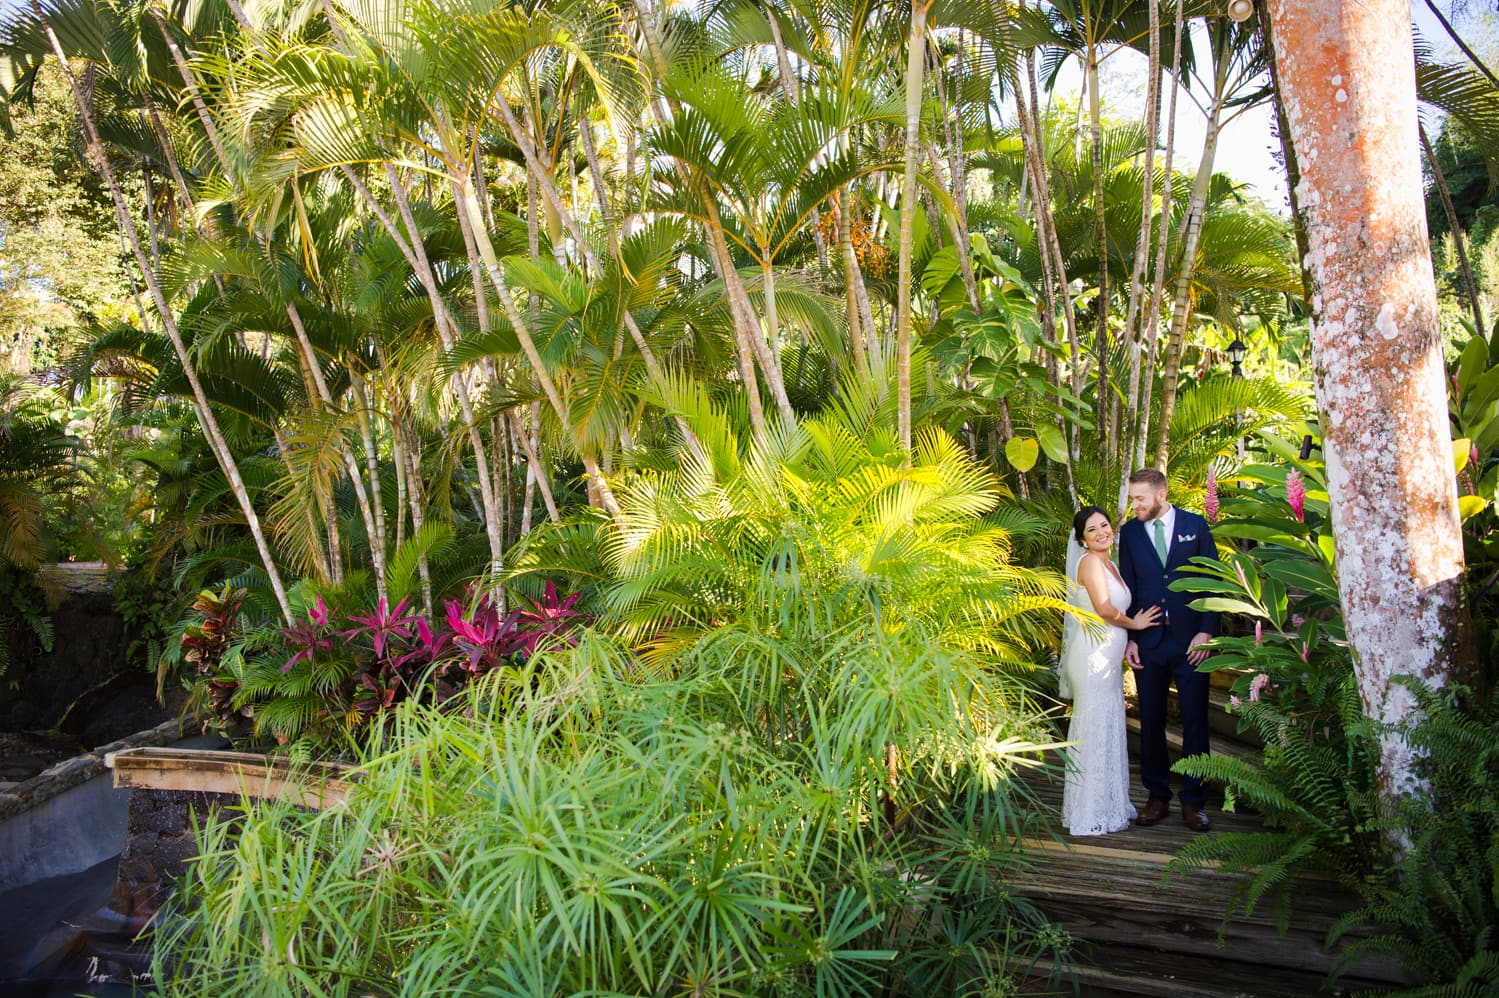 Puerto Rico destination wedding photography at Hacienda Azucena by photographer Camille Fontanez